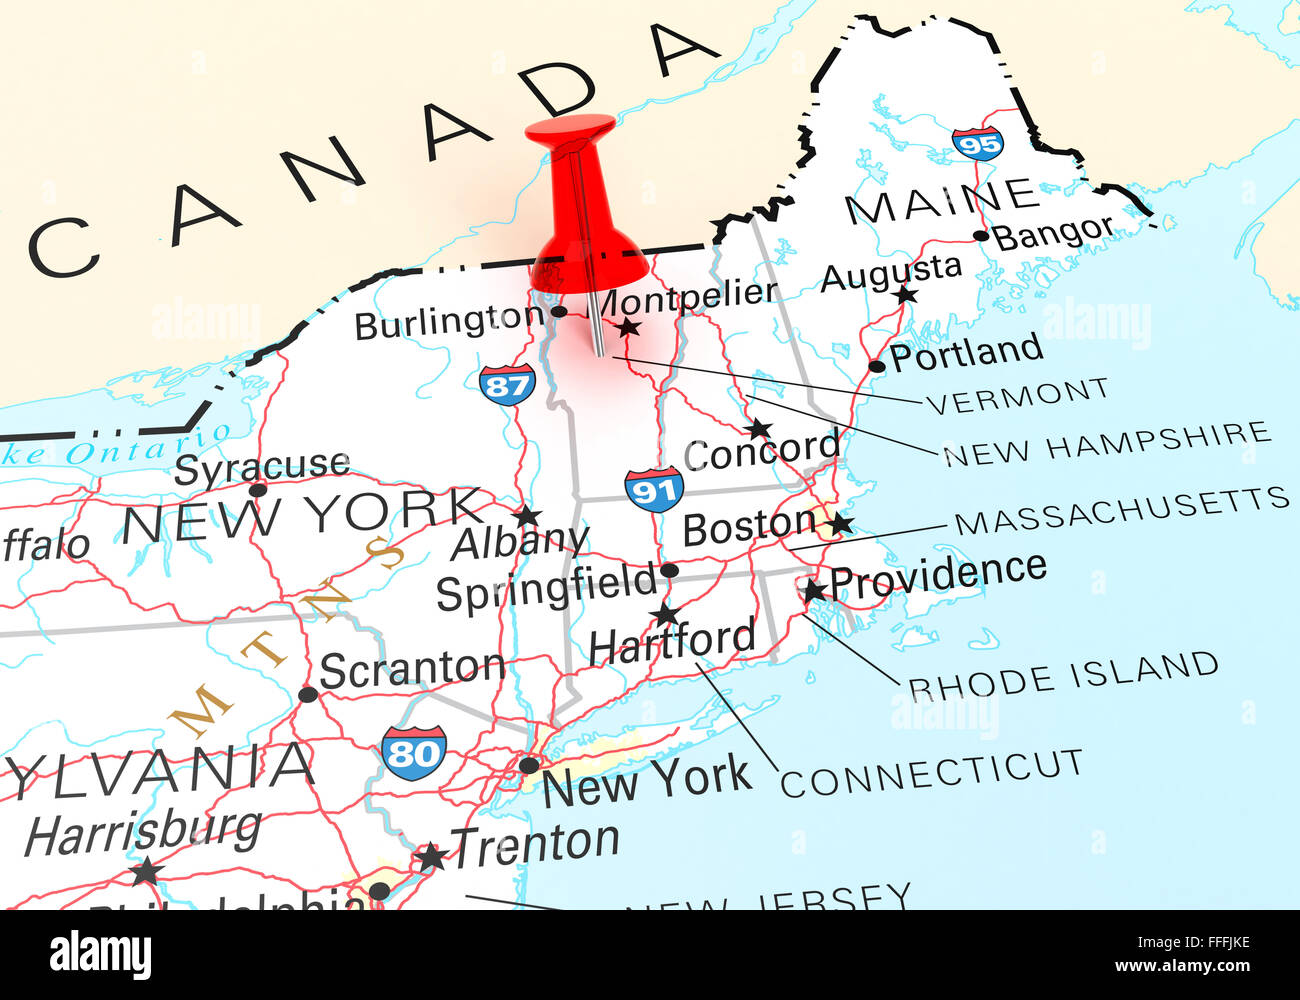 Vermont State Maps USA Maps Of Vermont VT Vermont State Maps USA - New york vermont map